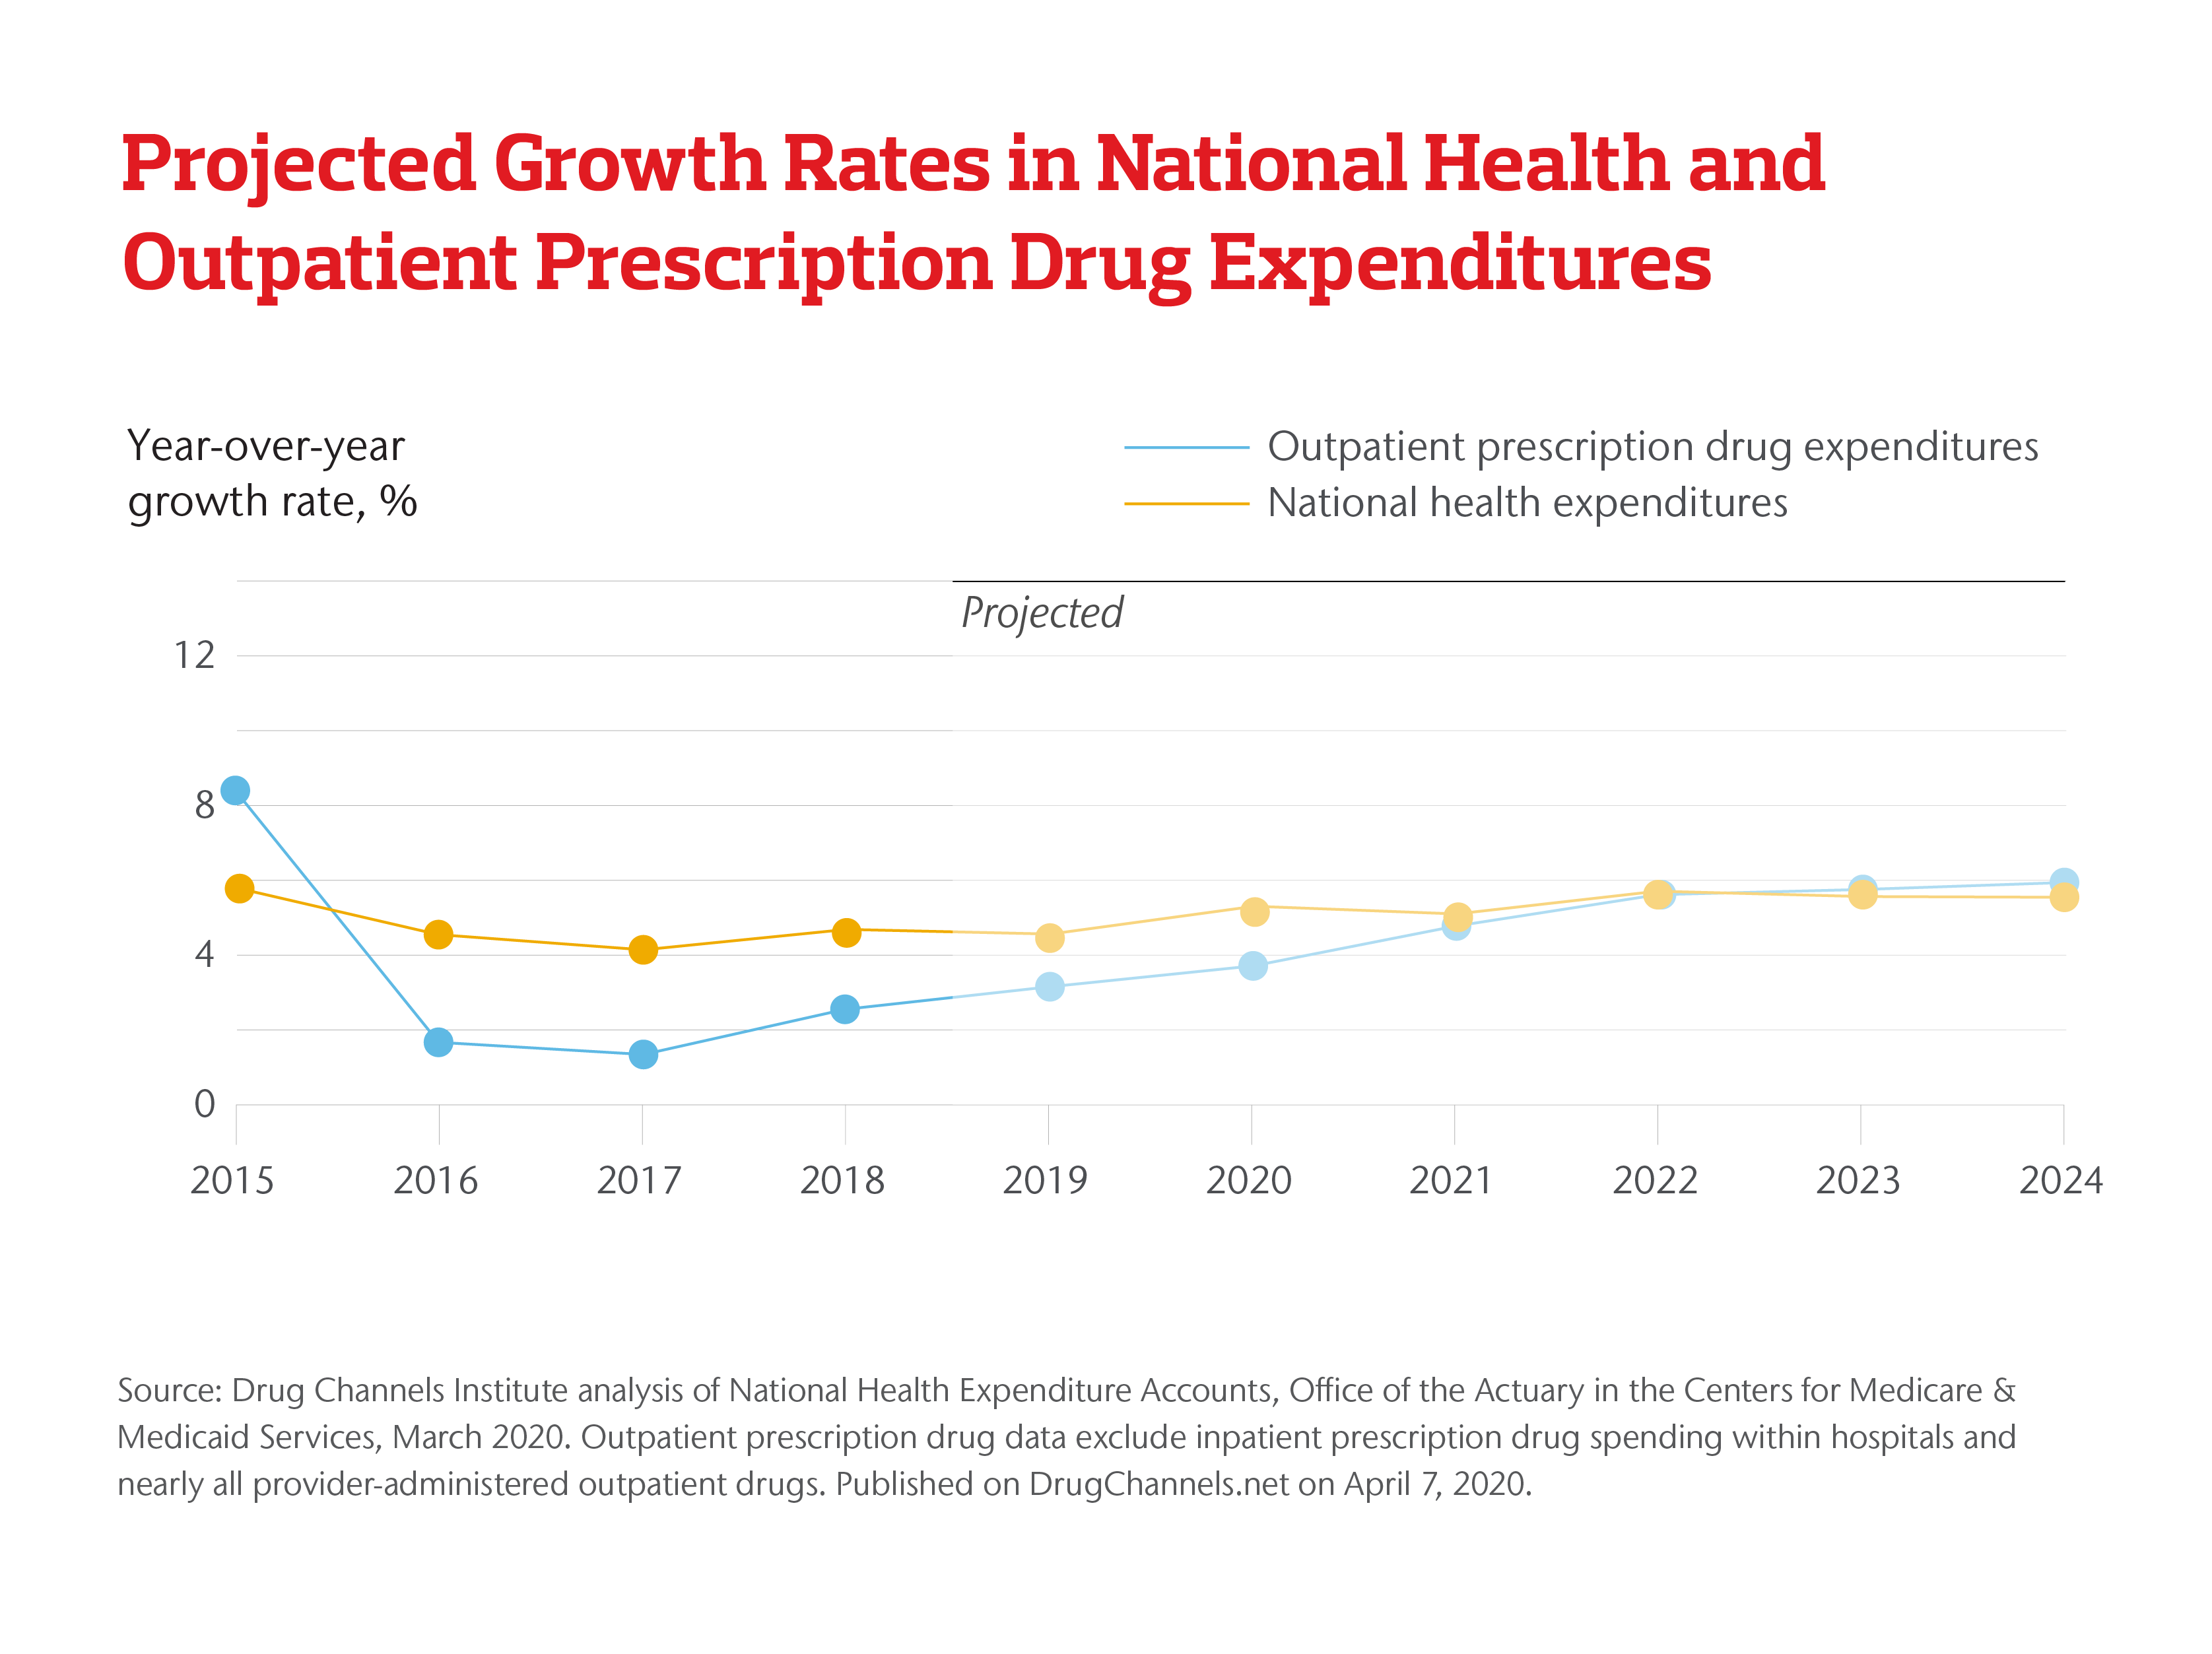 Projected Growth Rates in National Health and Outpatient Prescription Drug Expenditures